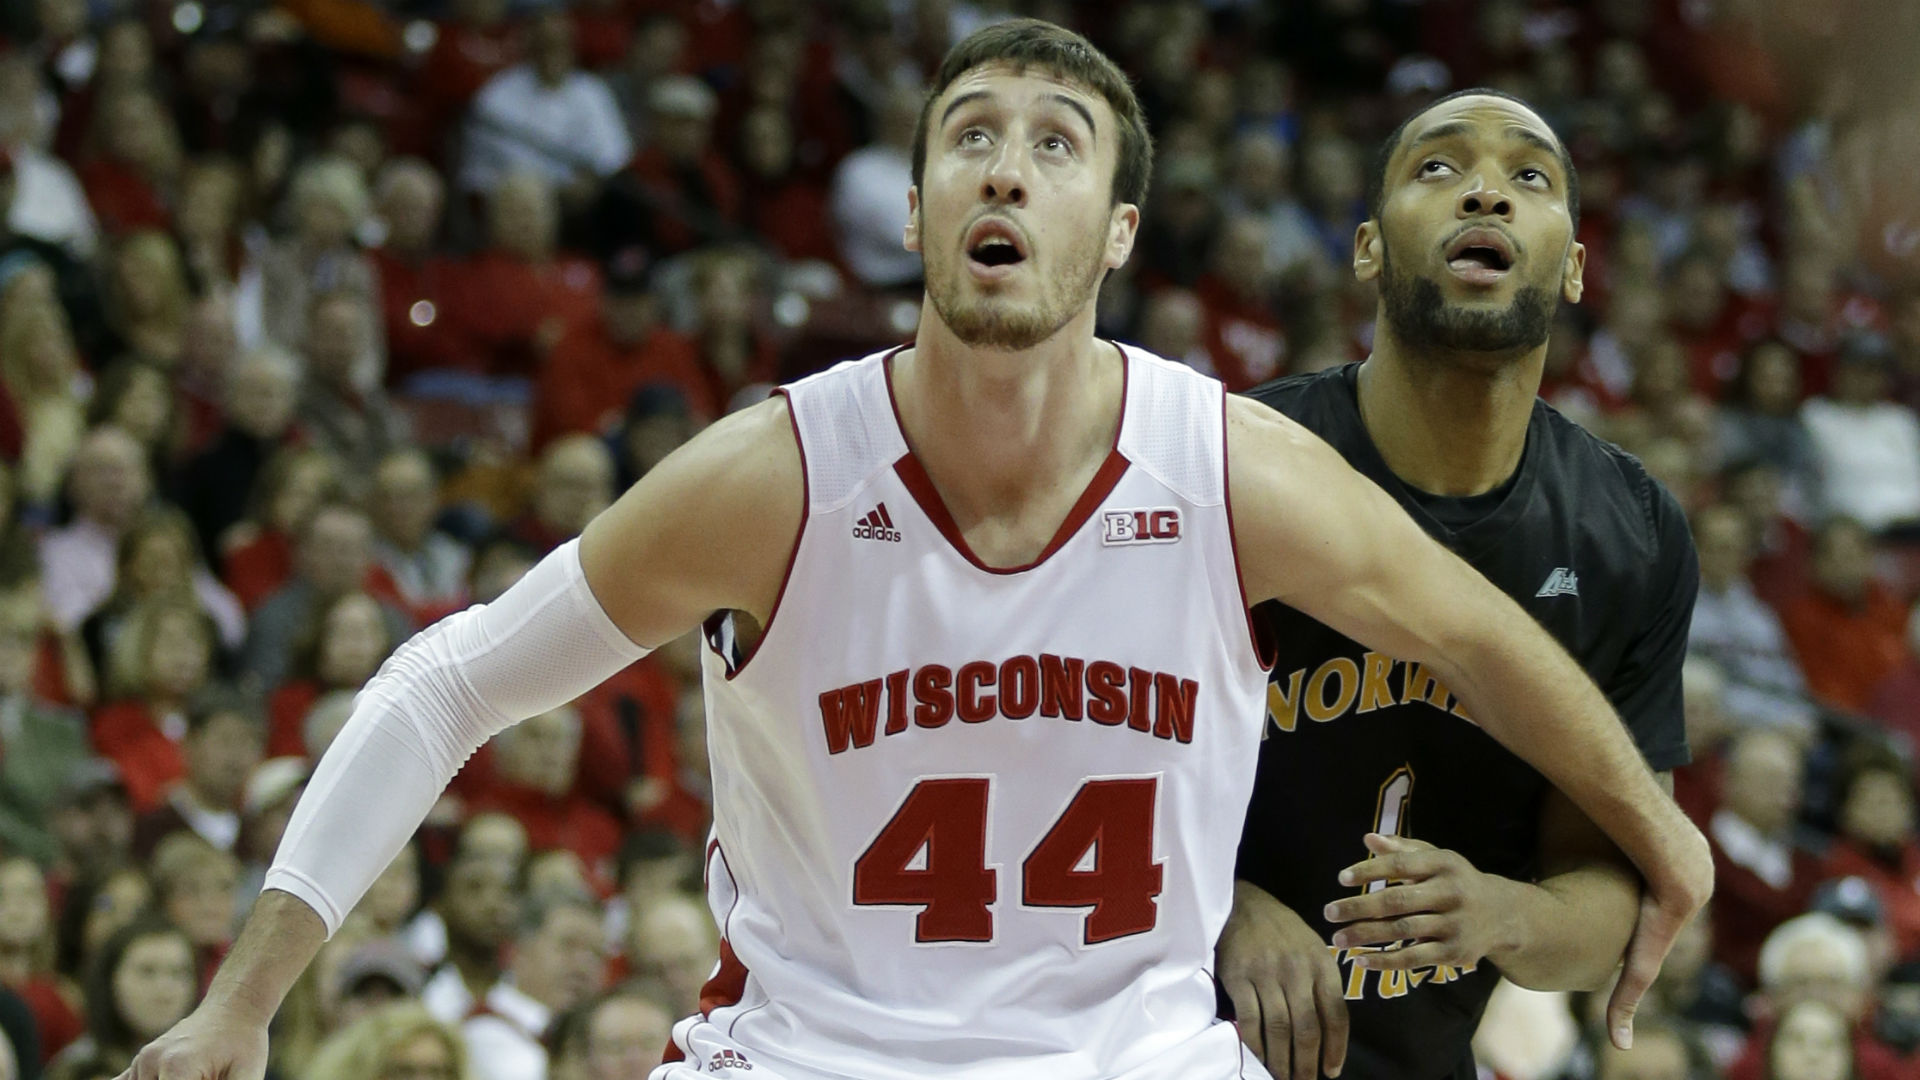 Sunday college hoops – Wisconsin lays big number vs. surging Illinois